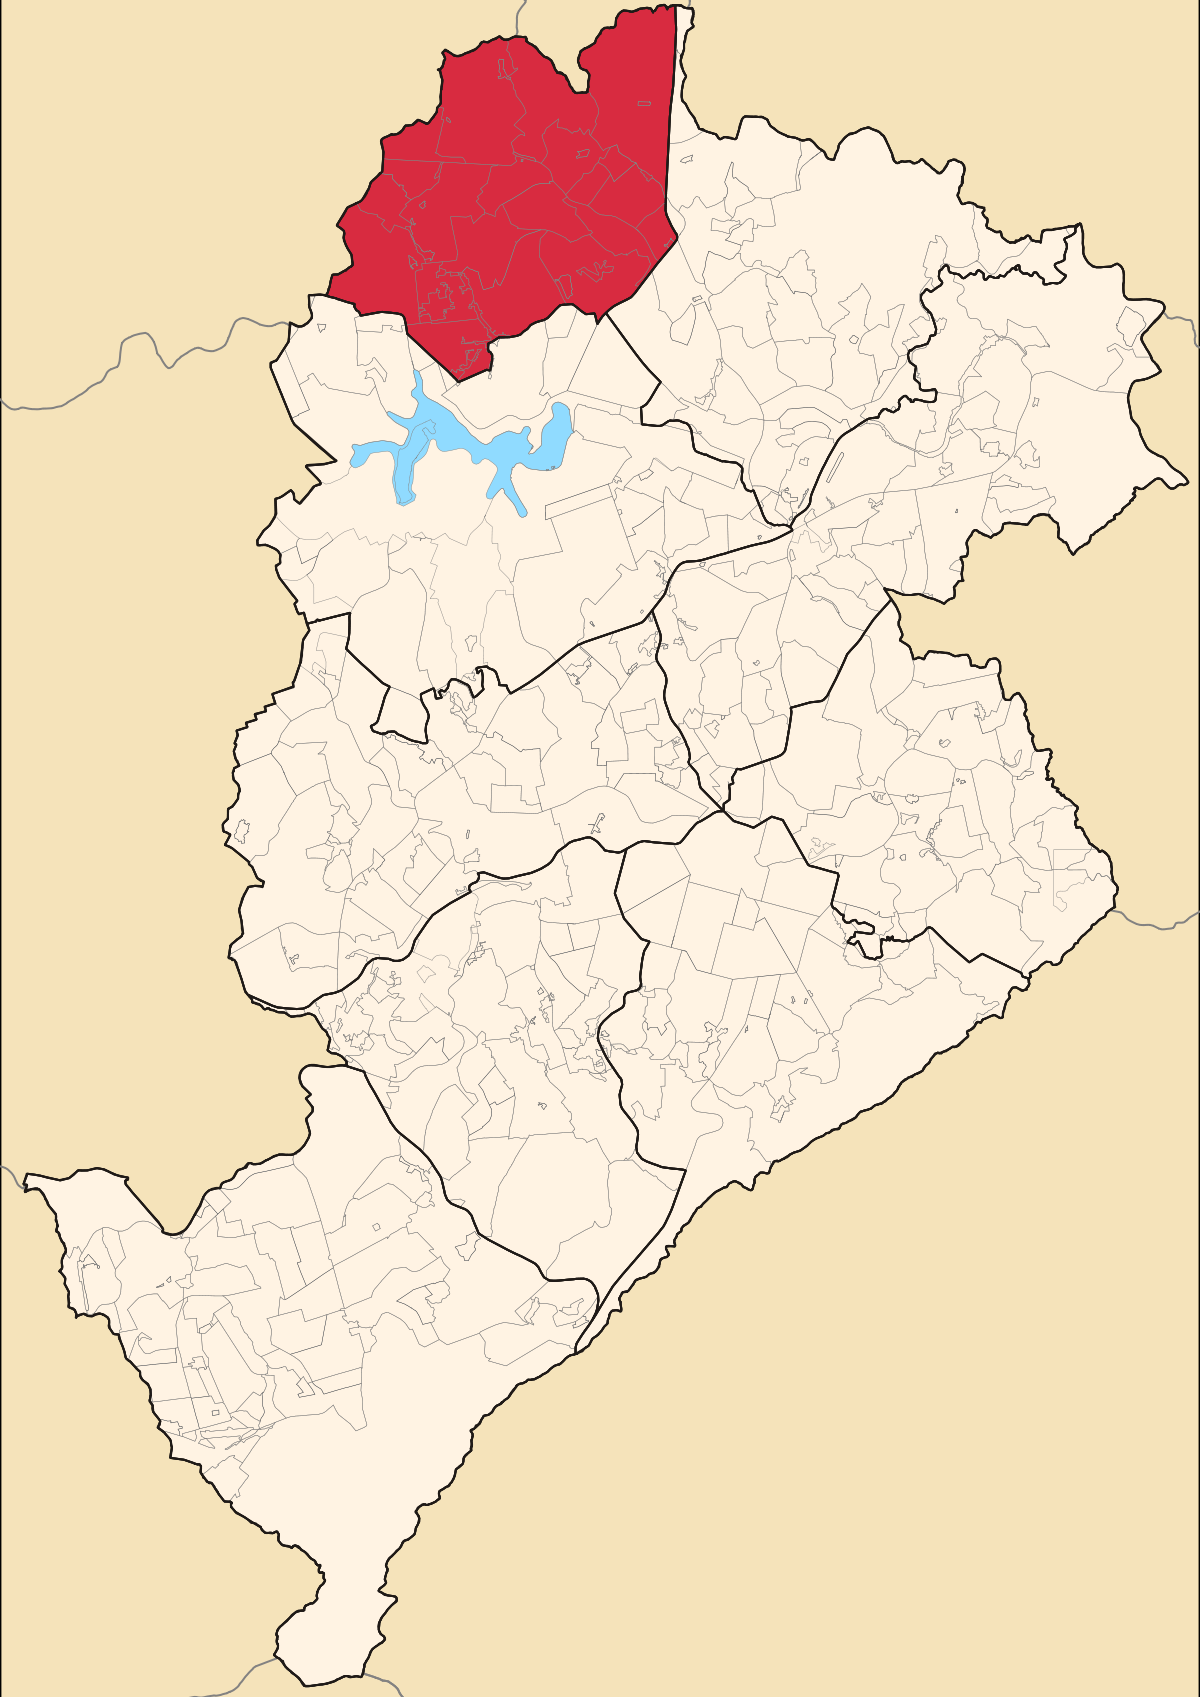 Plano de cul is Ribeirão das Neves-4295